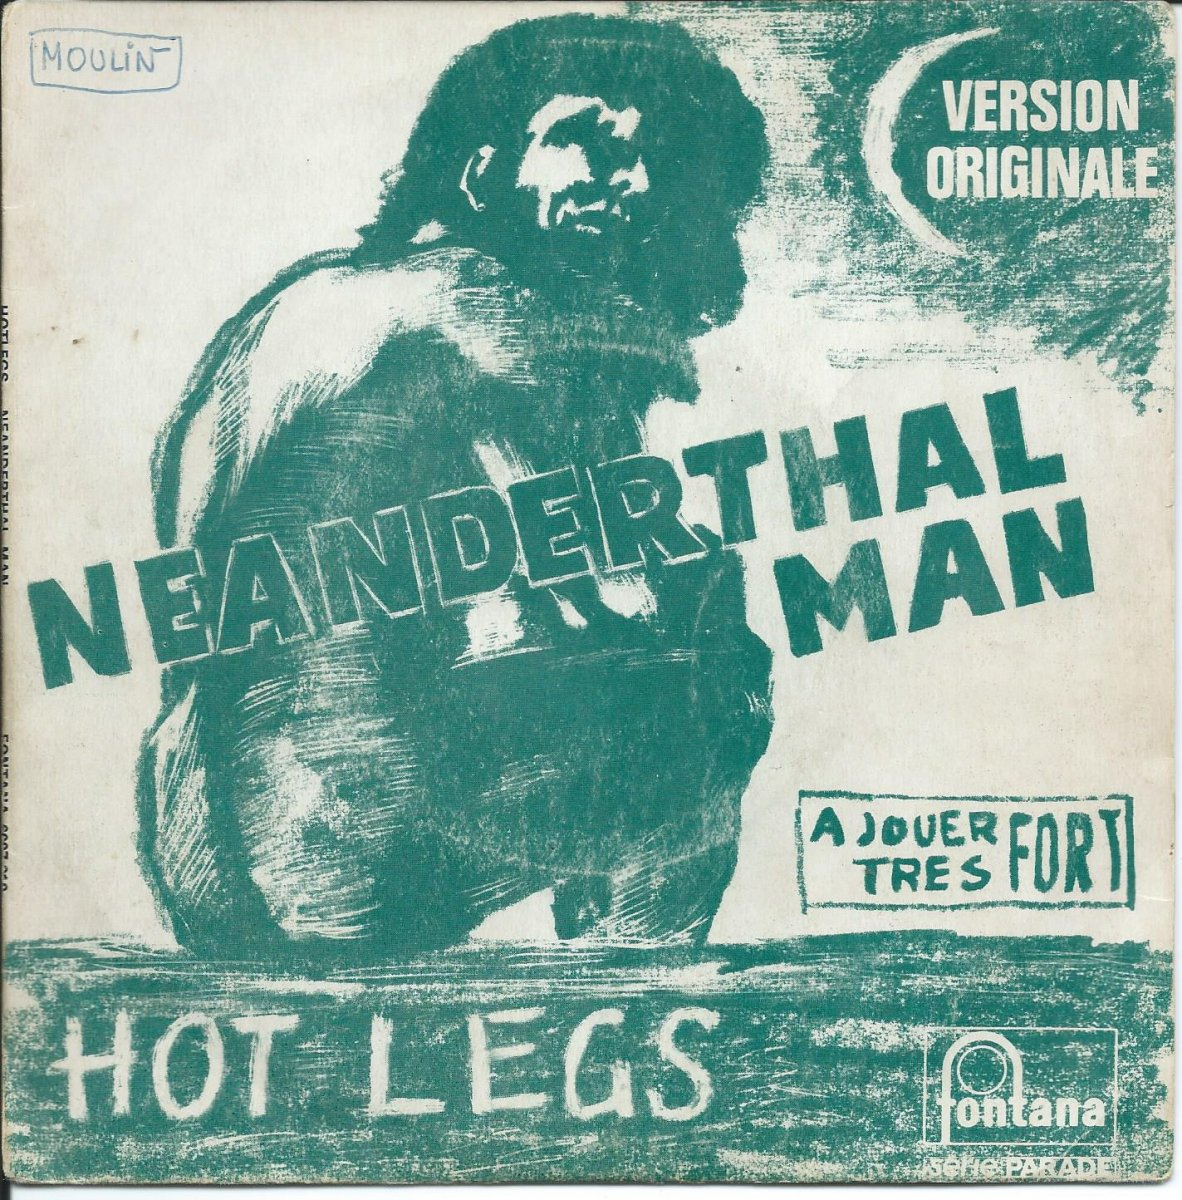 HOT LEGS / NEANDERTHAL MAN / YOU DIDN'T LIKE IT, BECAUSE YOU DIDN'T THINK OF IT (7